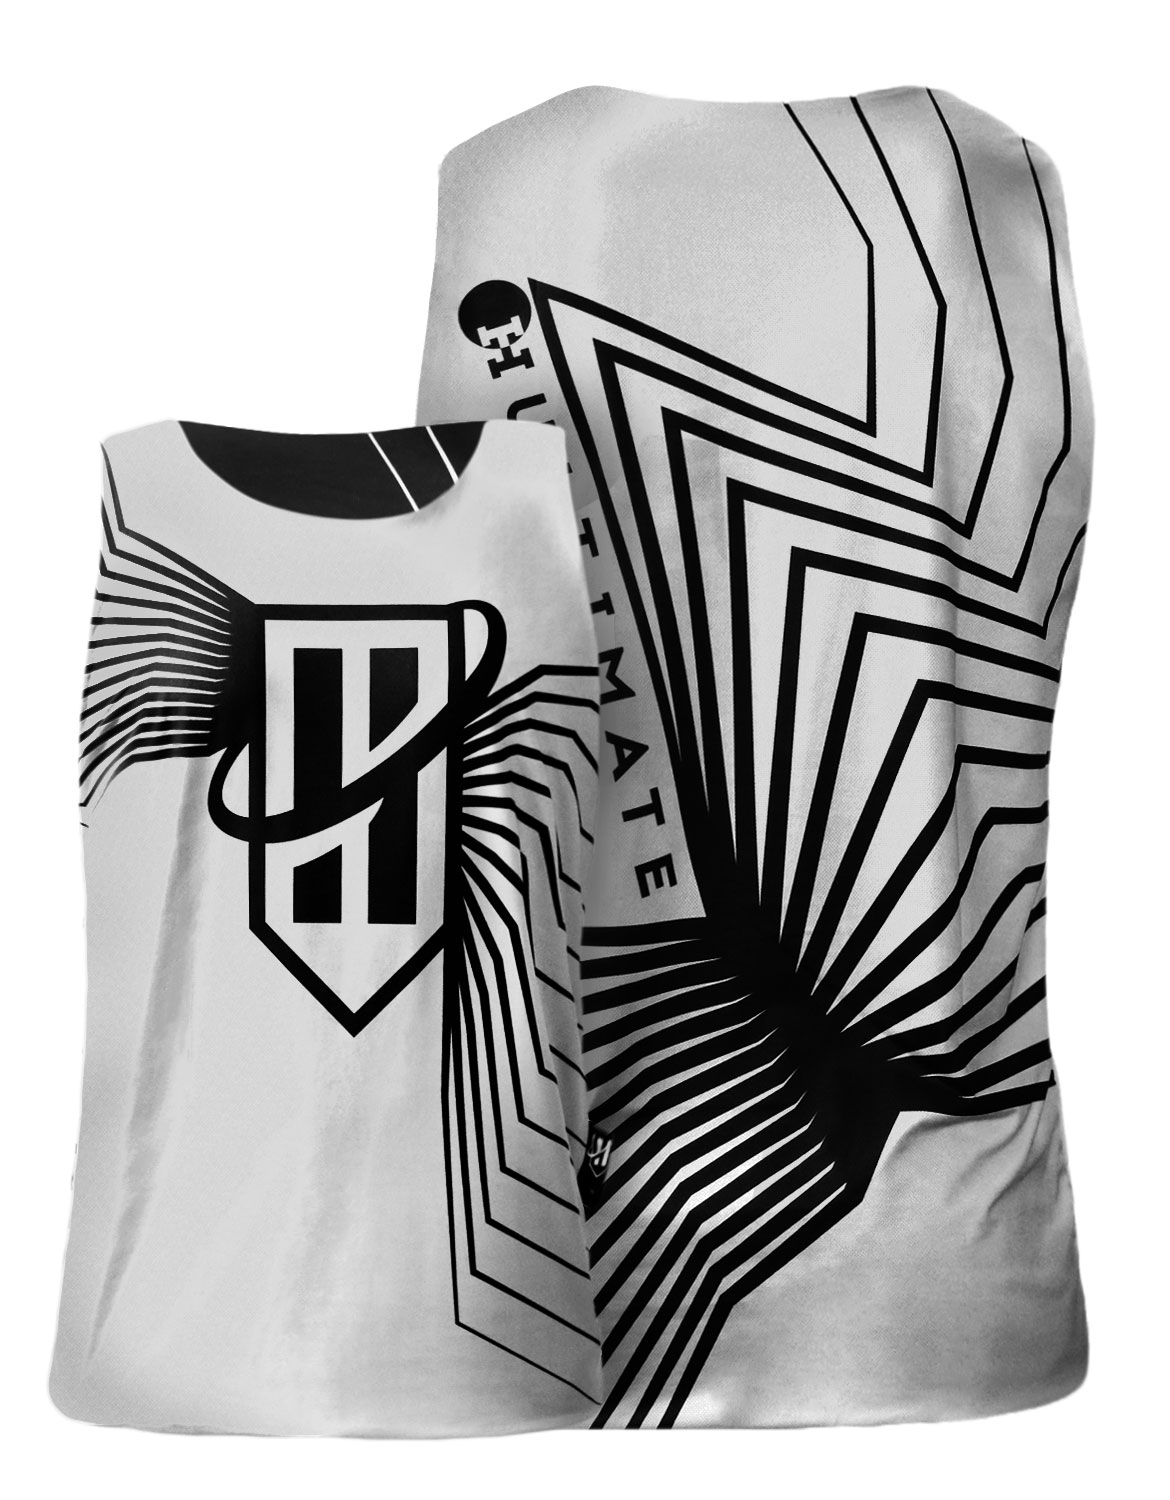 OUTLET | Products | NEW B&W REVERSIBLE | Hultimate Sportswear